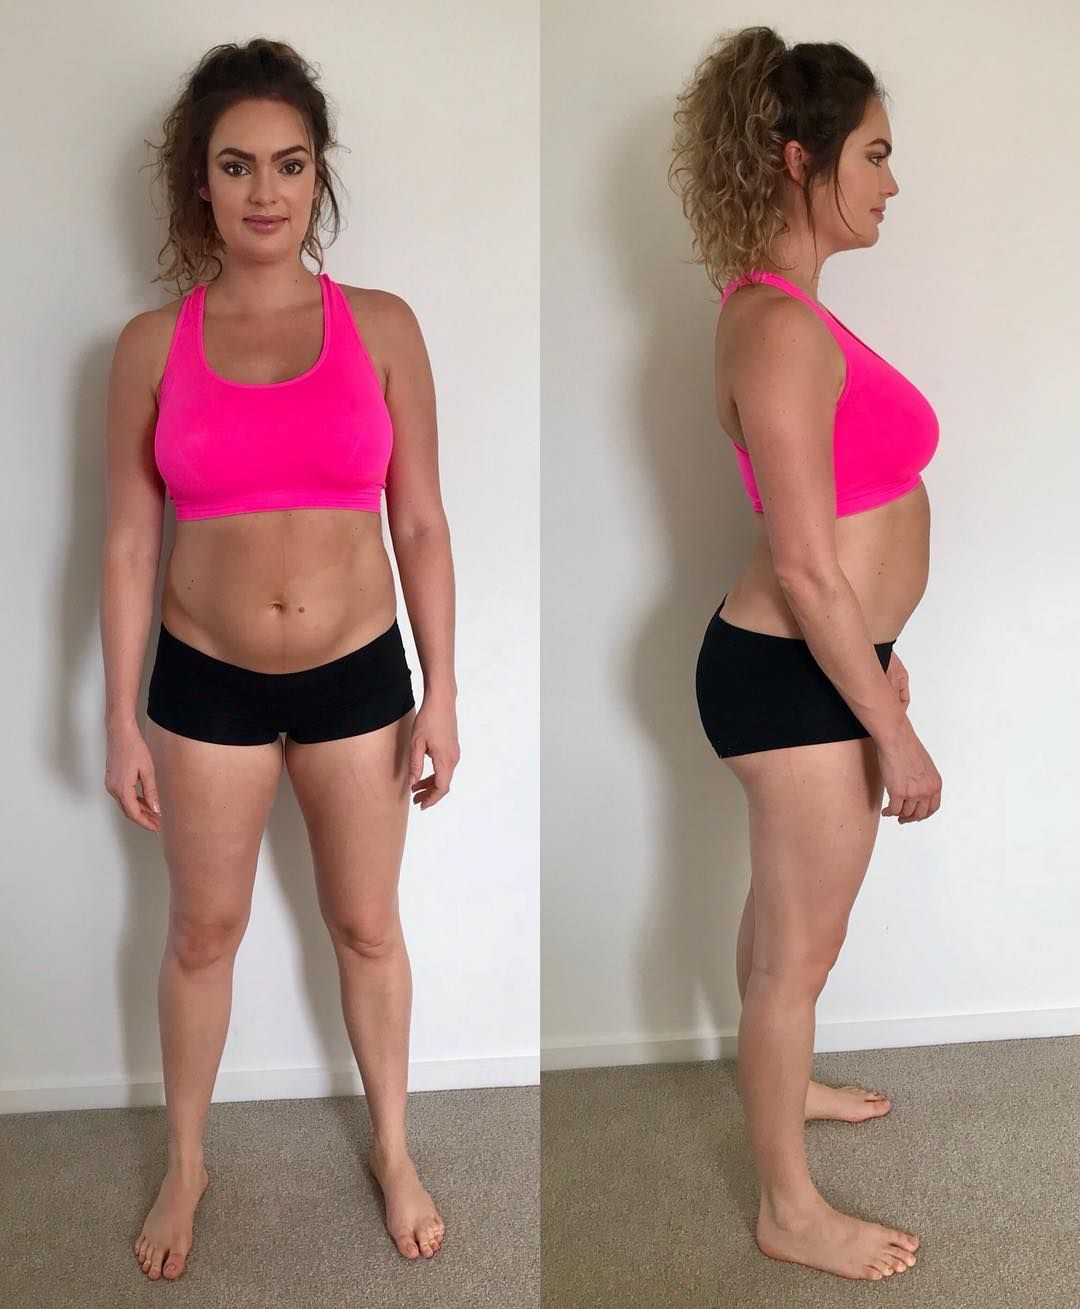 9edcc5b383 Emily Skye s 2-Second Transformation Makes an Important Point About  Postpartum Bodies - The fitness influencer wants women to know that  snapping back to ...